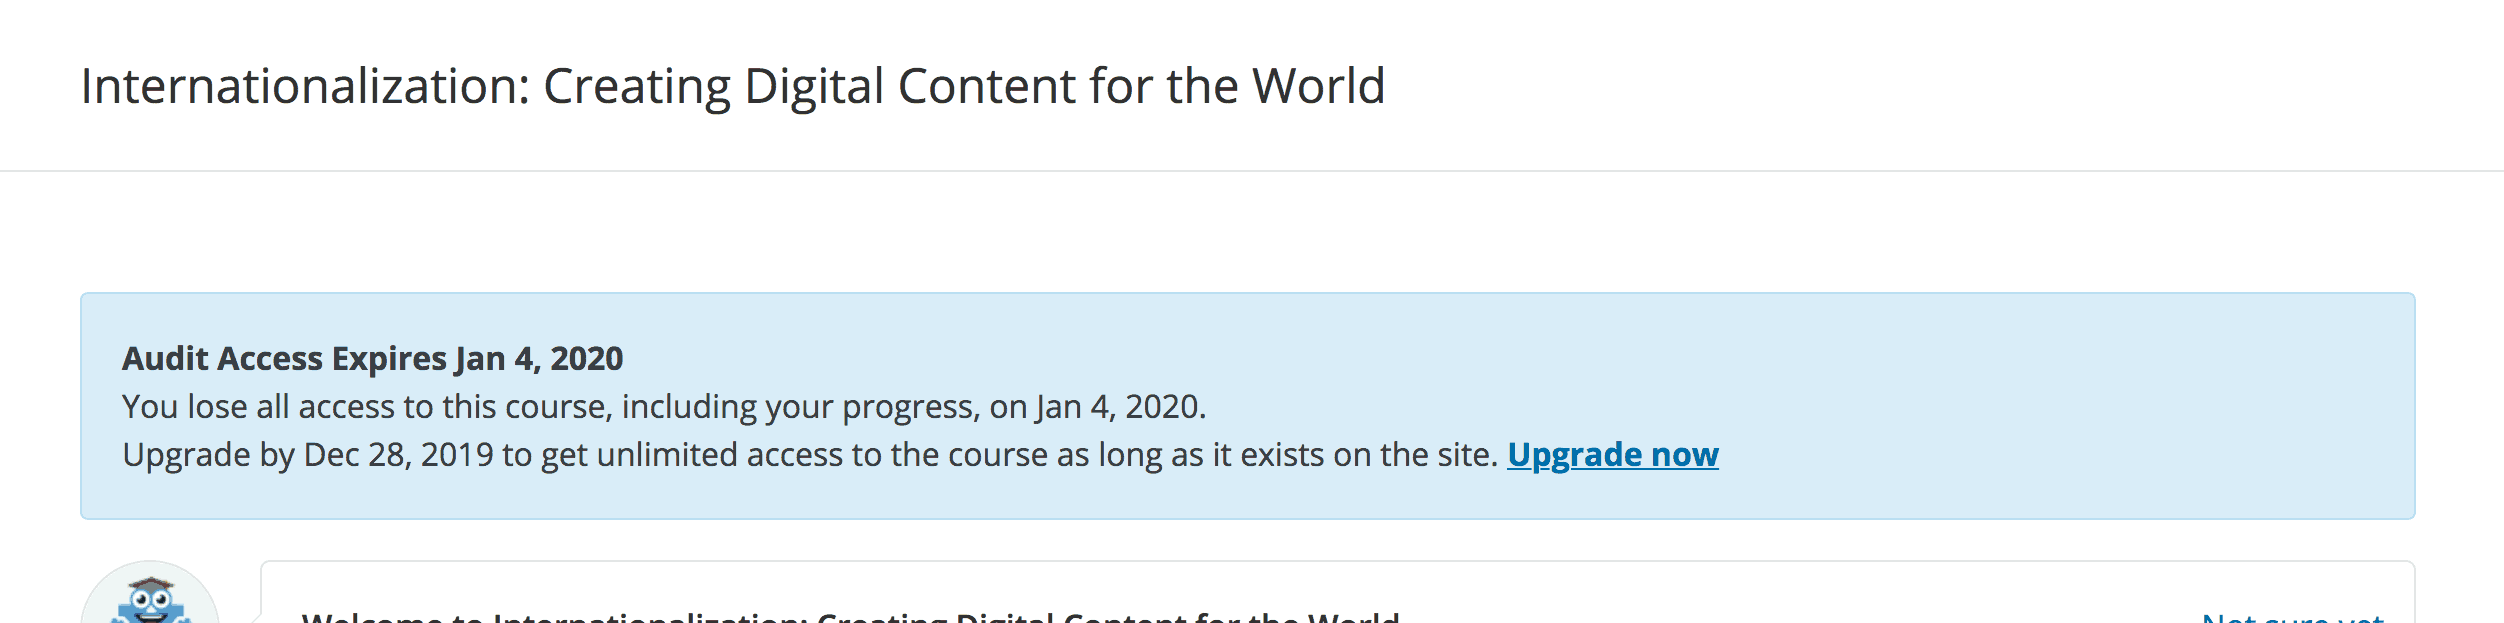 edX course screenshot describing how long the course is accessible